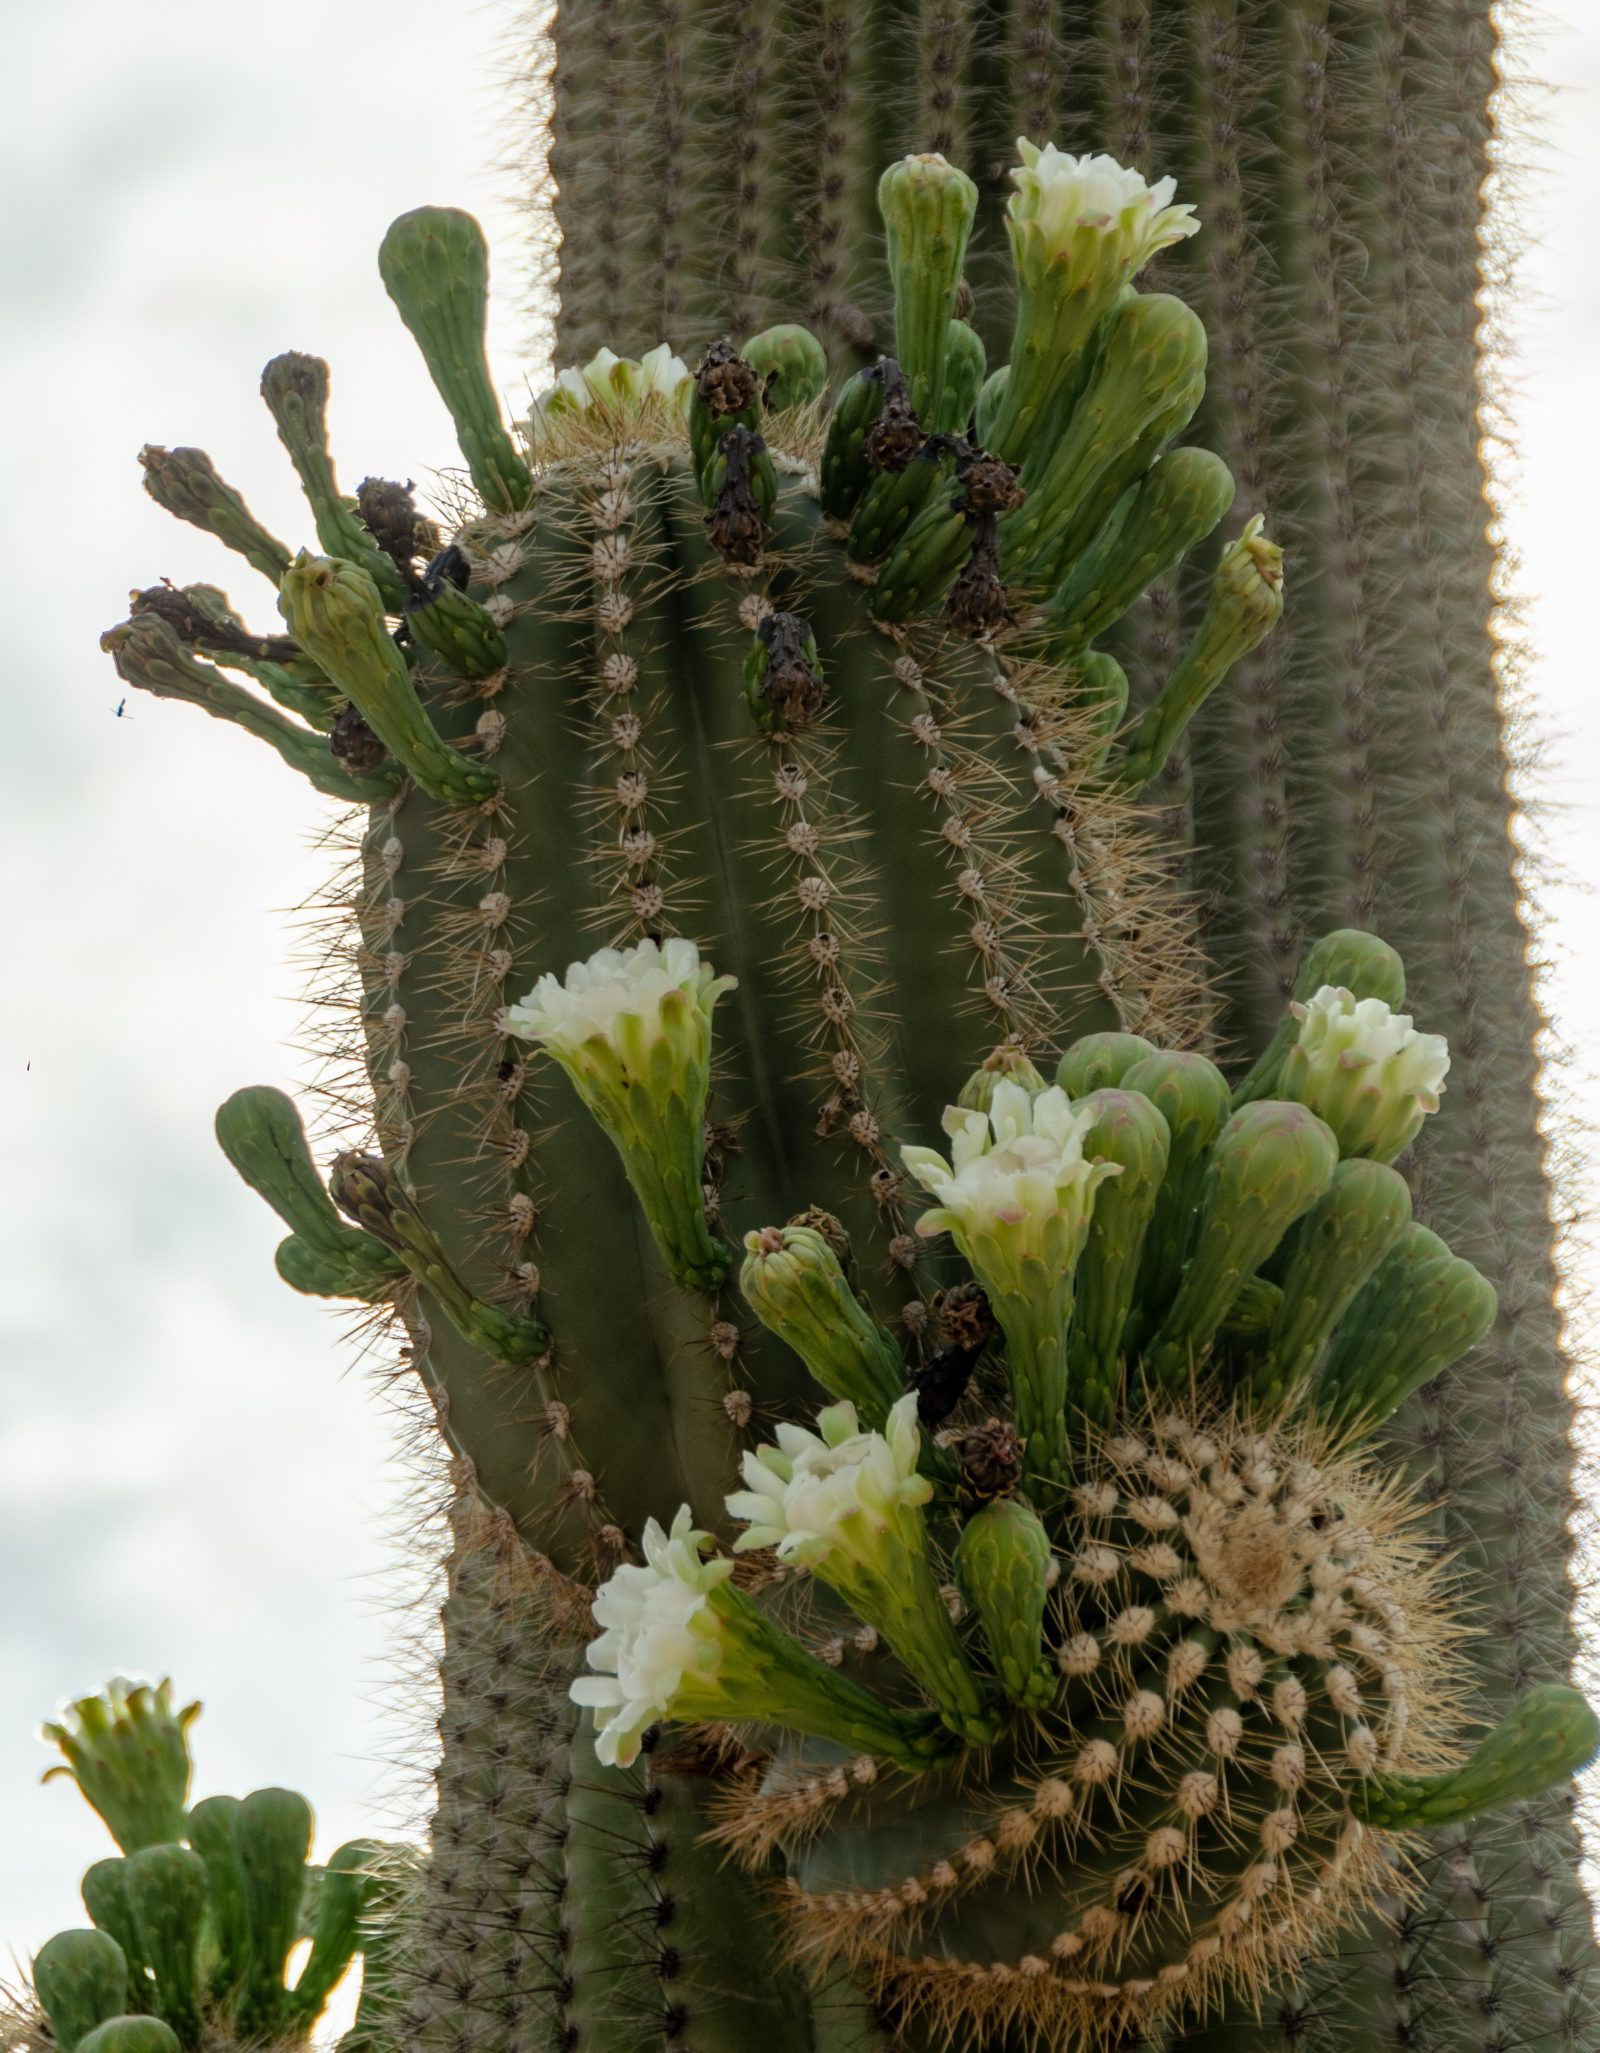 Saguaro buds and blooms